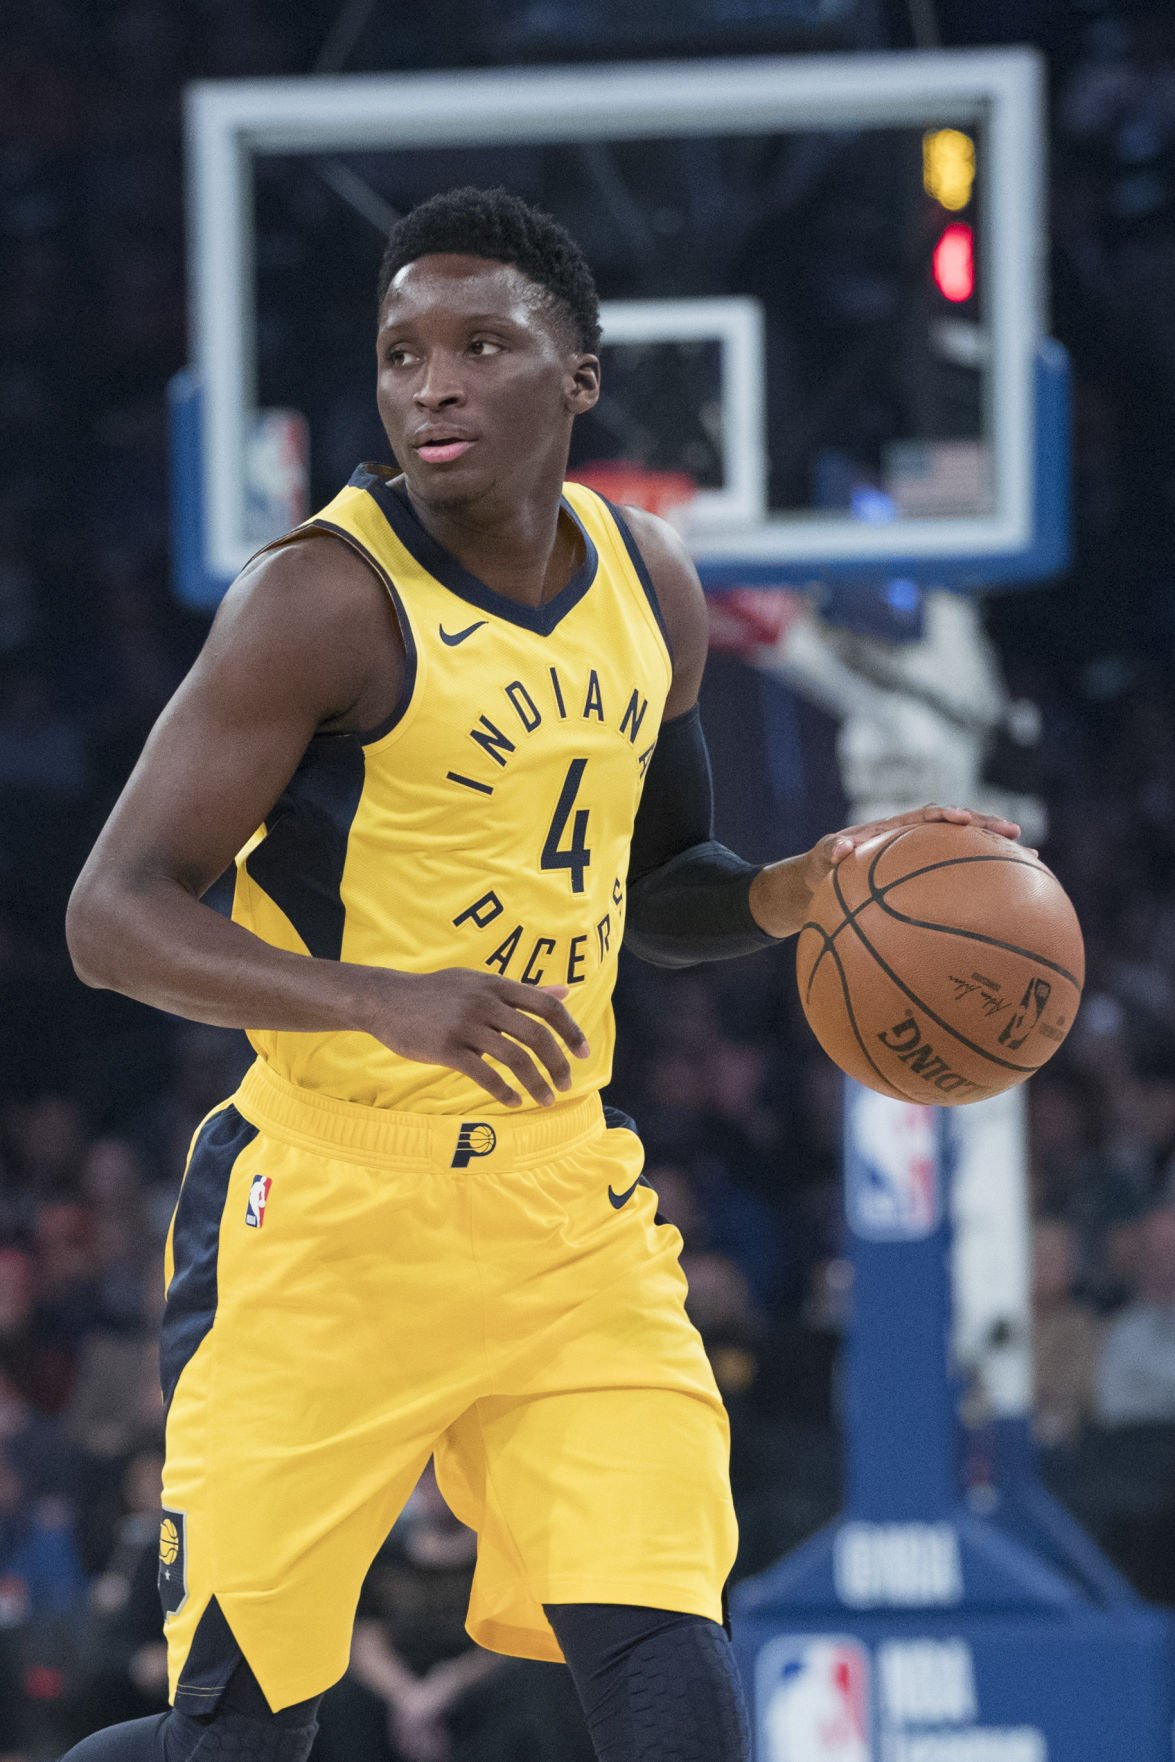 dcabdda1ab4 GO-TO PLAYER  Indiana guard Victor Oladipo handles the ball during the  Pacers  game against the Knicks on Oct. 31 at Madison Square Garden in New  York.